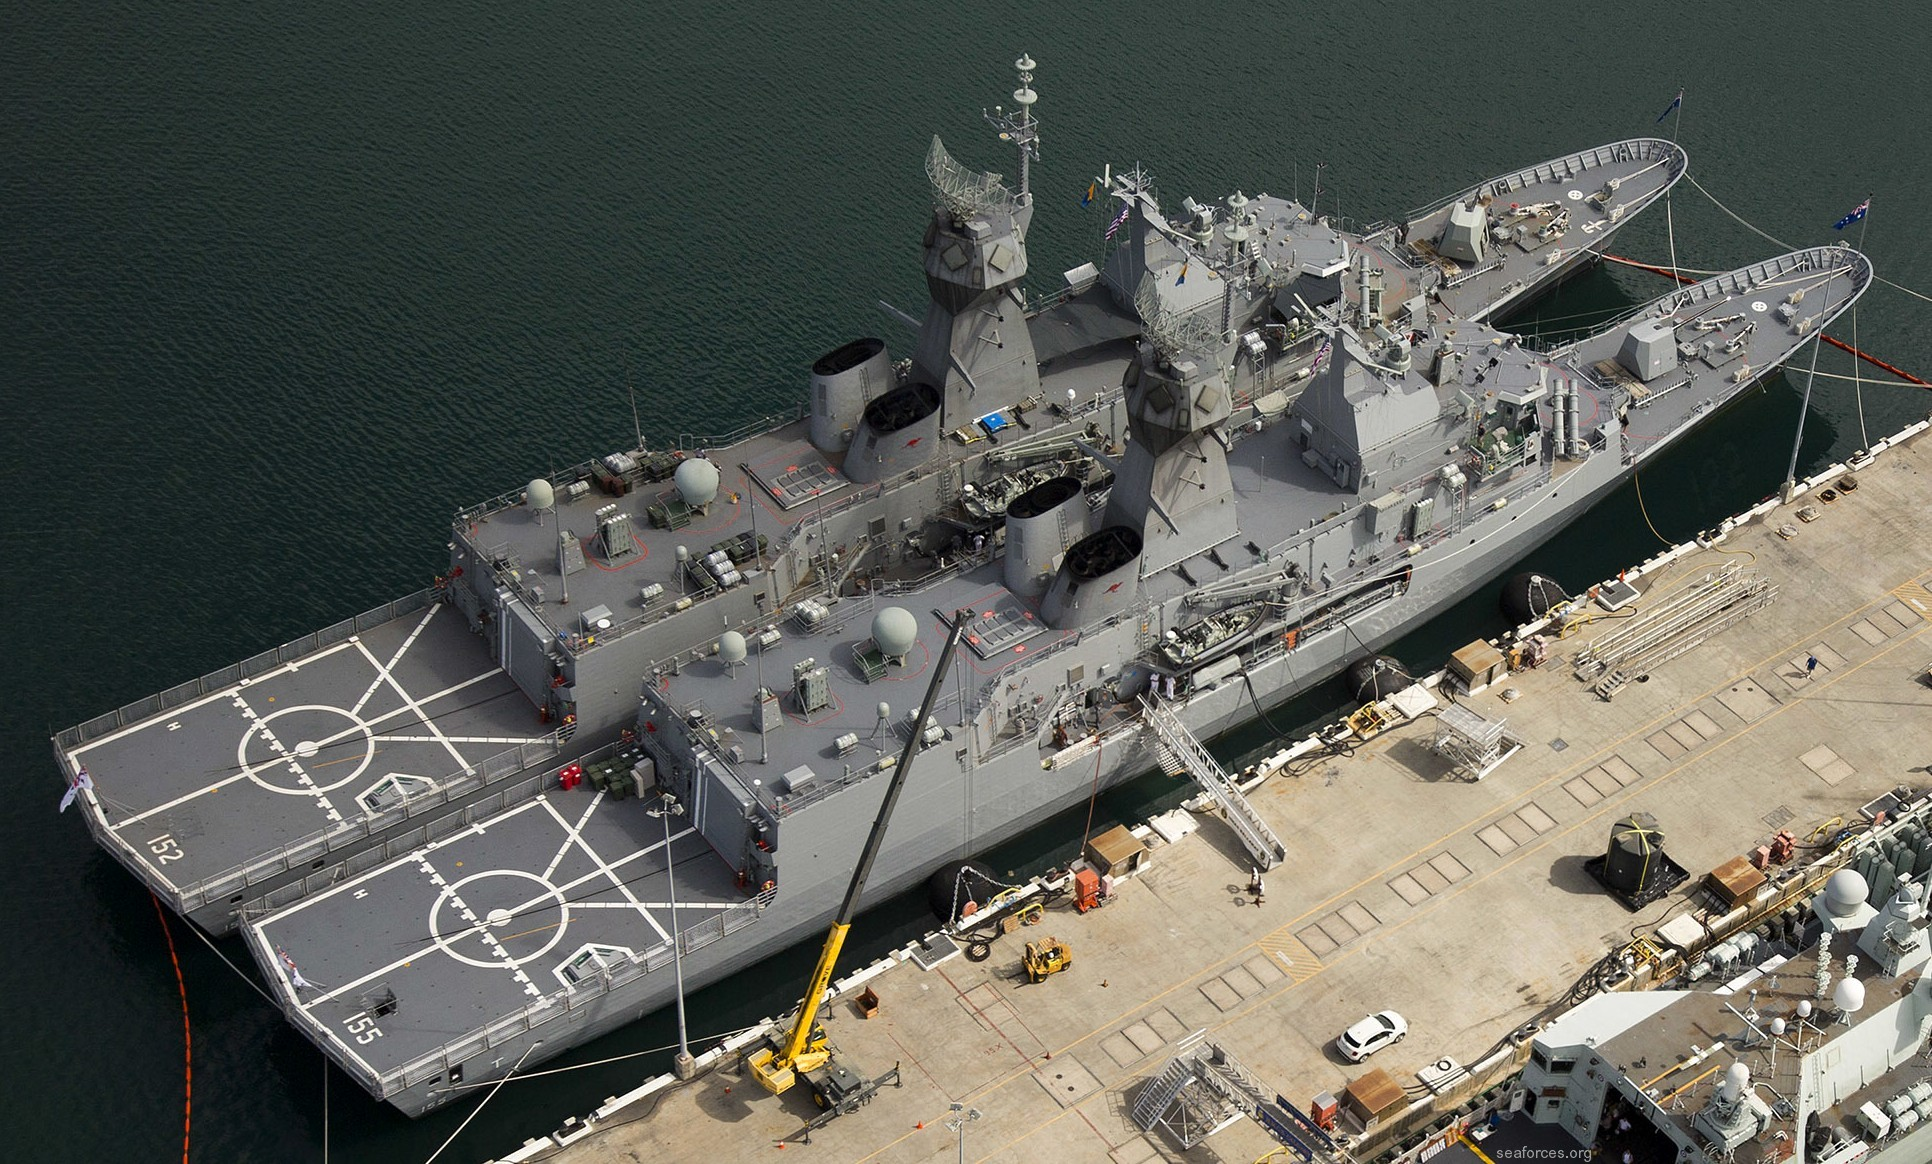 Parison Of Hmas Adelaide And The Former Aircraft Carrier Melbourne Courtesy Aussie Modeller